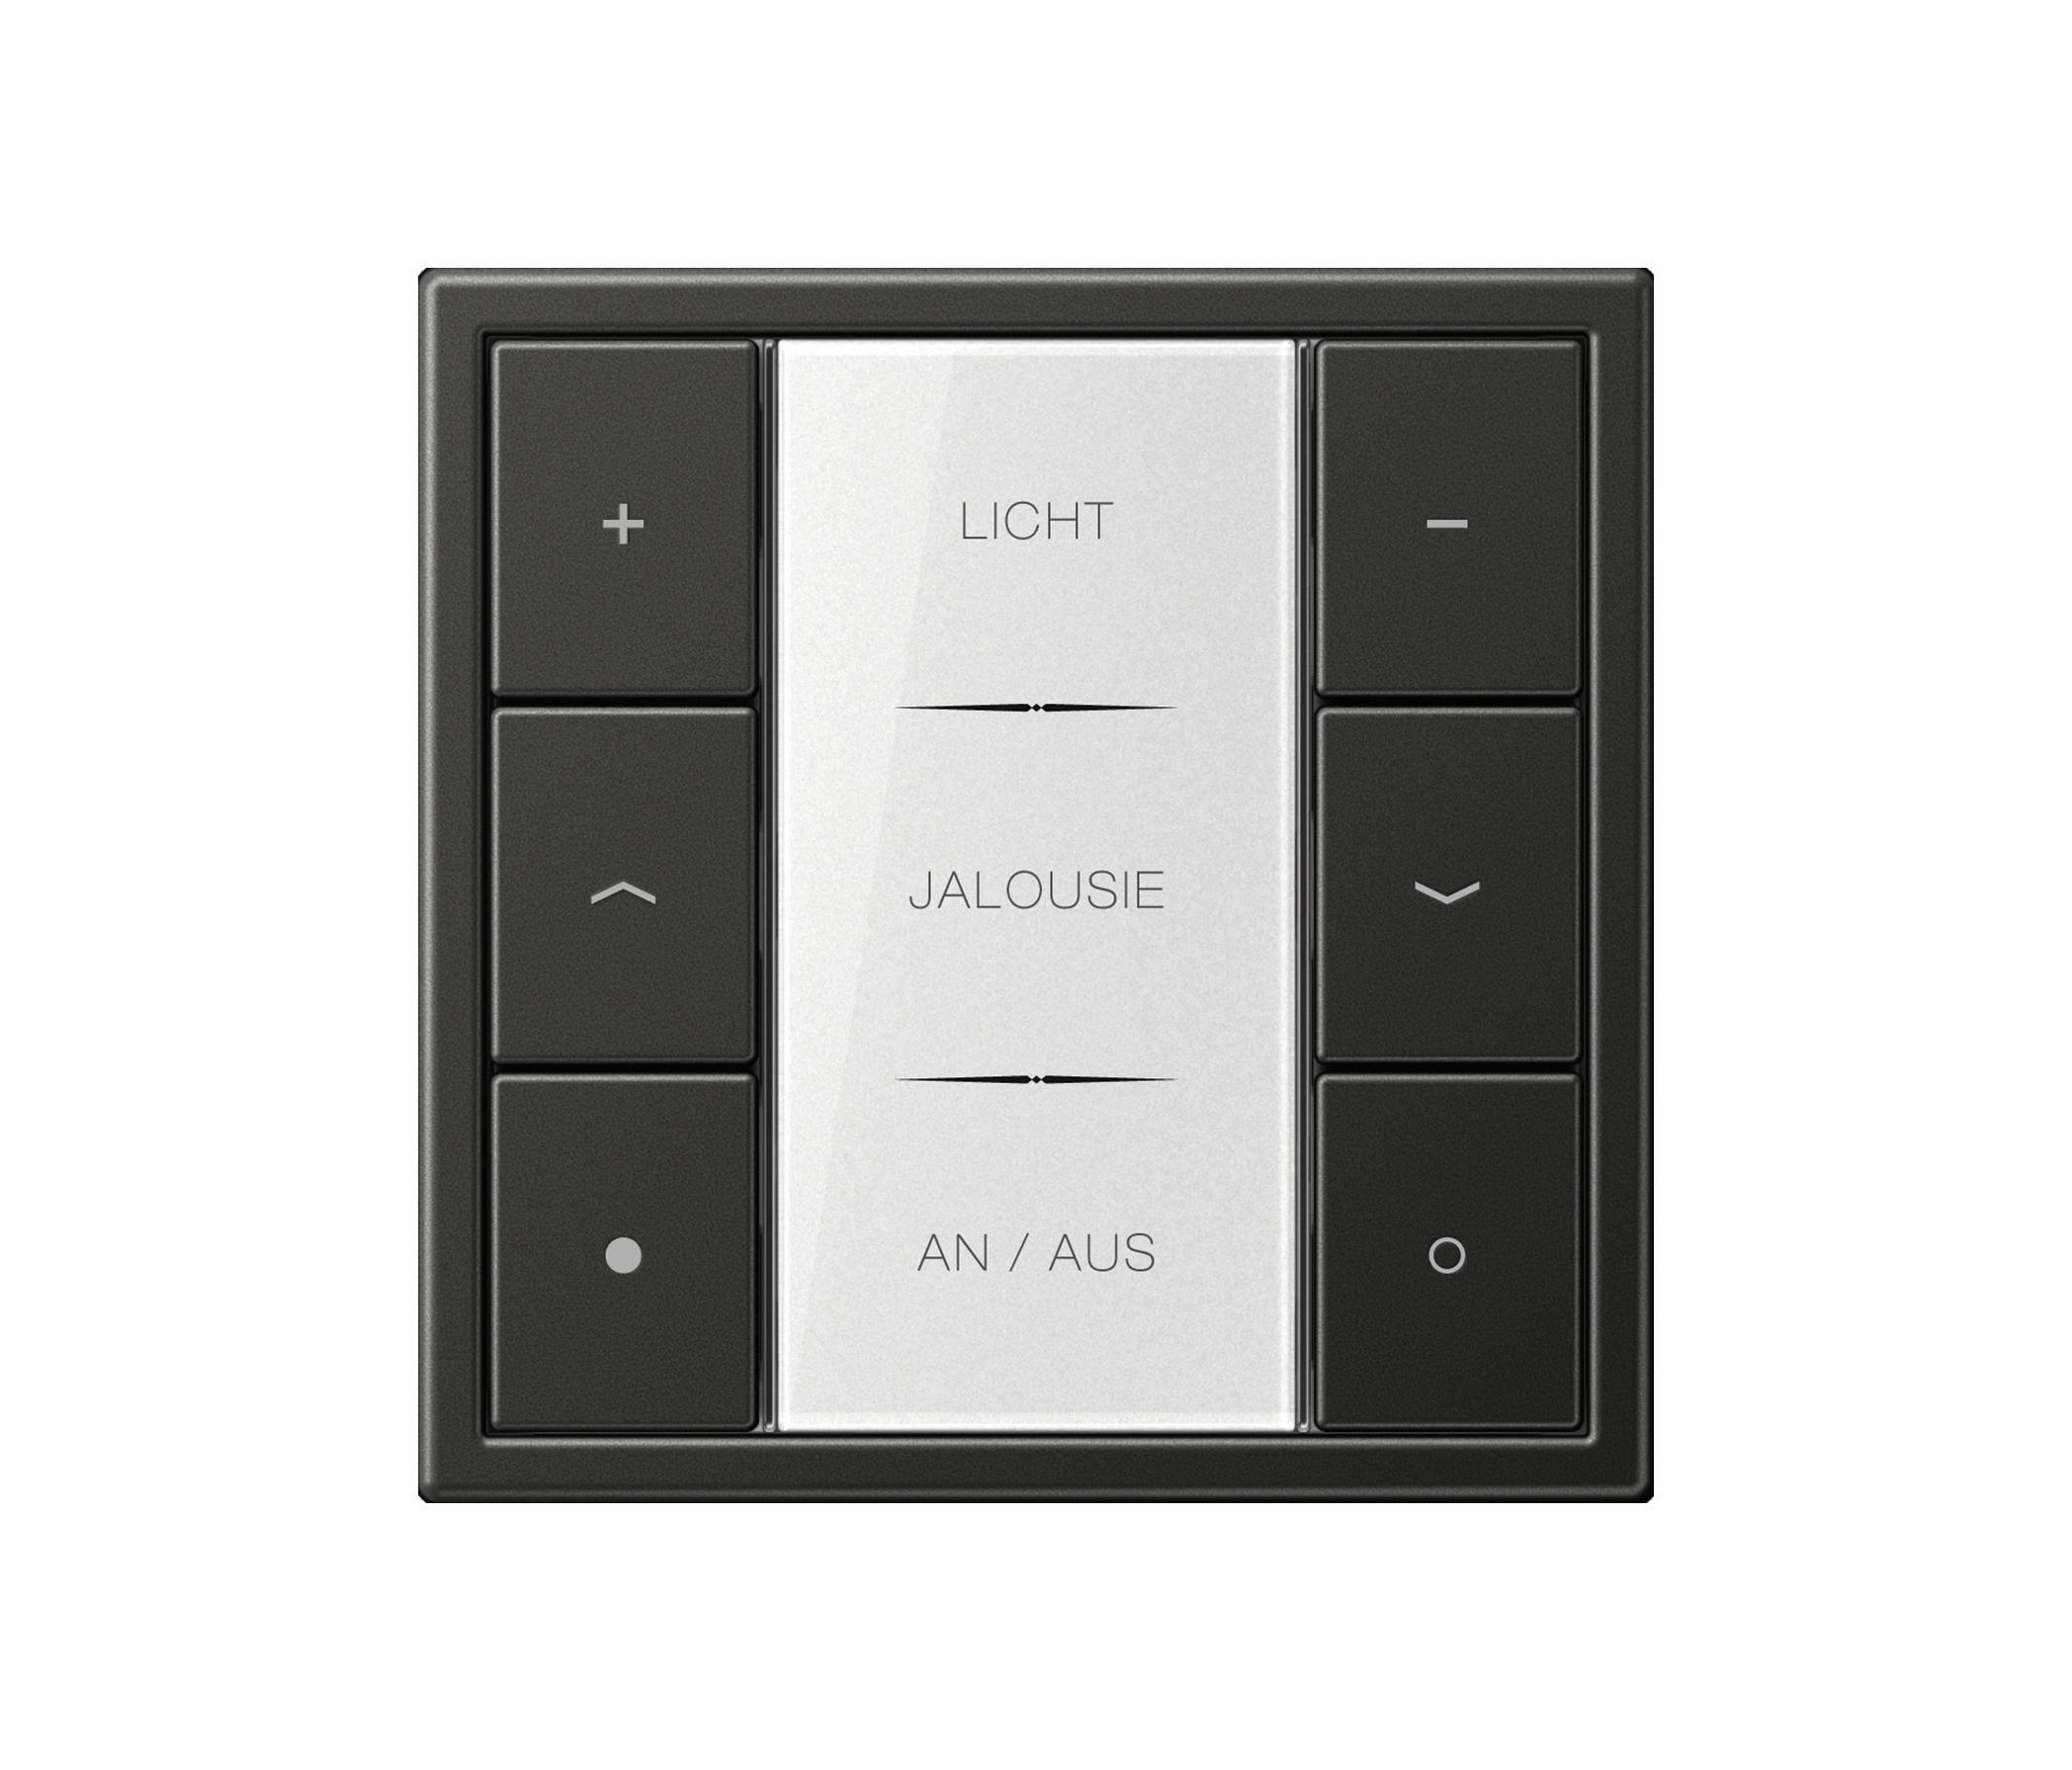 knx tastsensoren f 50 ls 990 knx systeme von jung. Black Bedroom Furniture Sets. Home Design Ideas